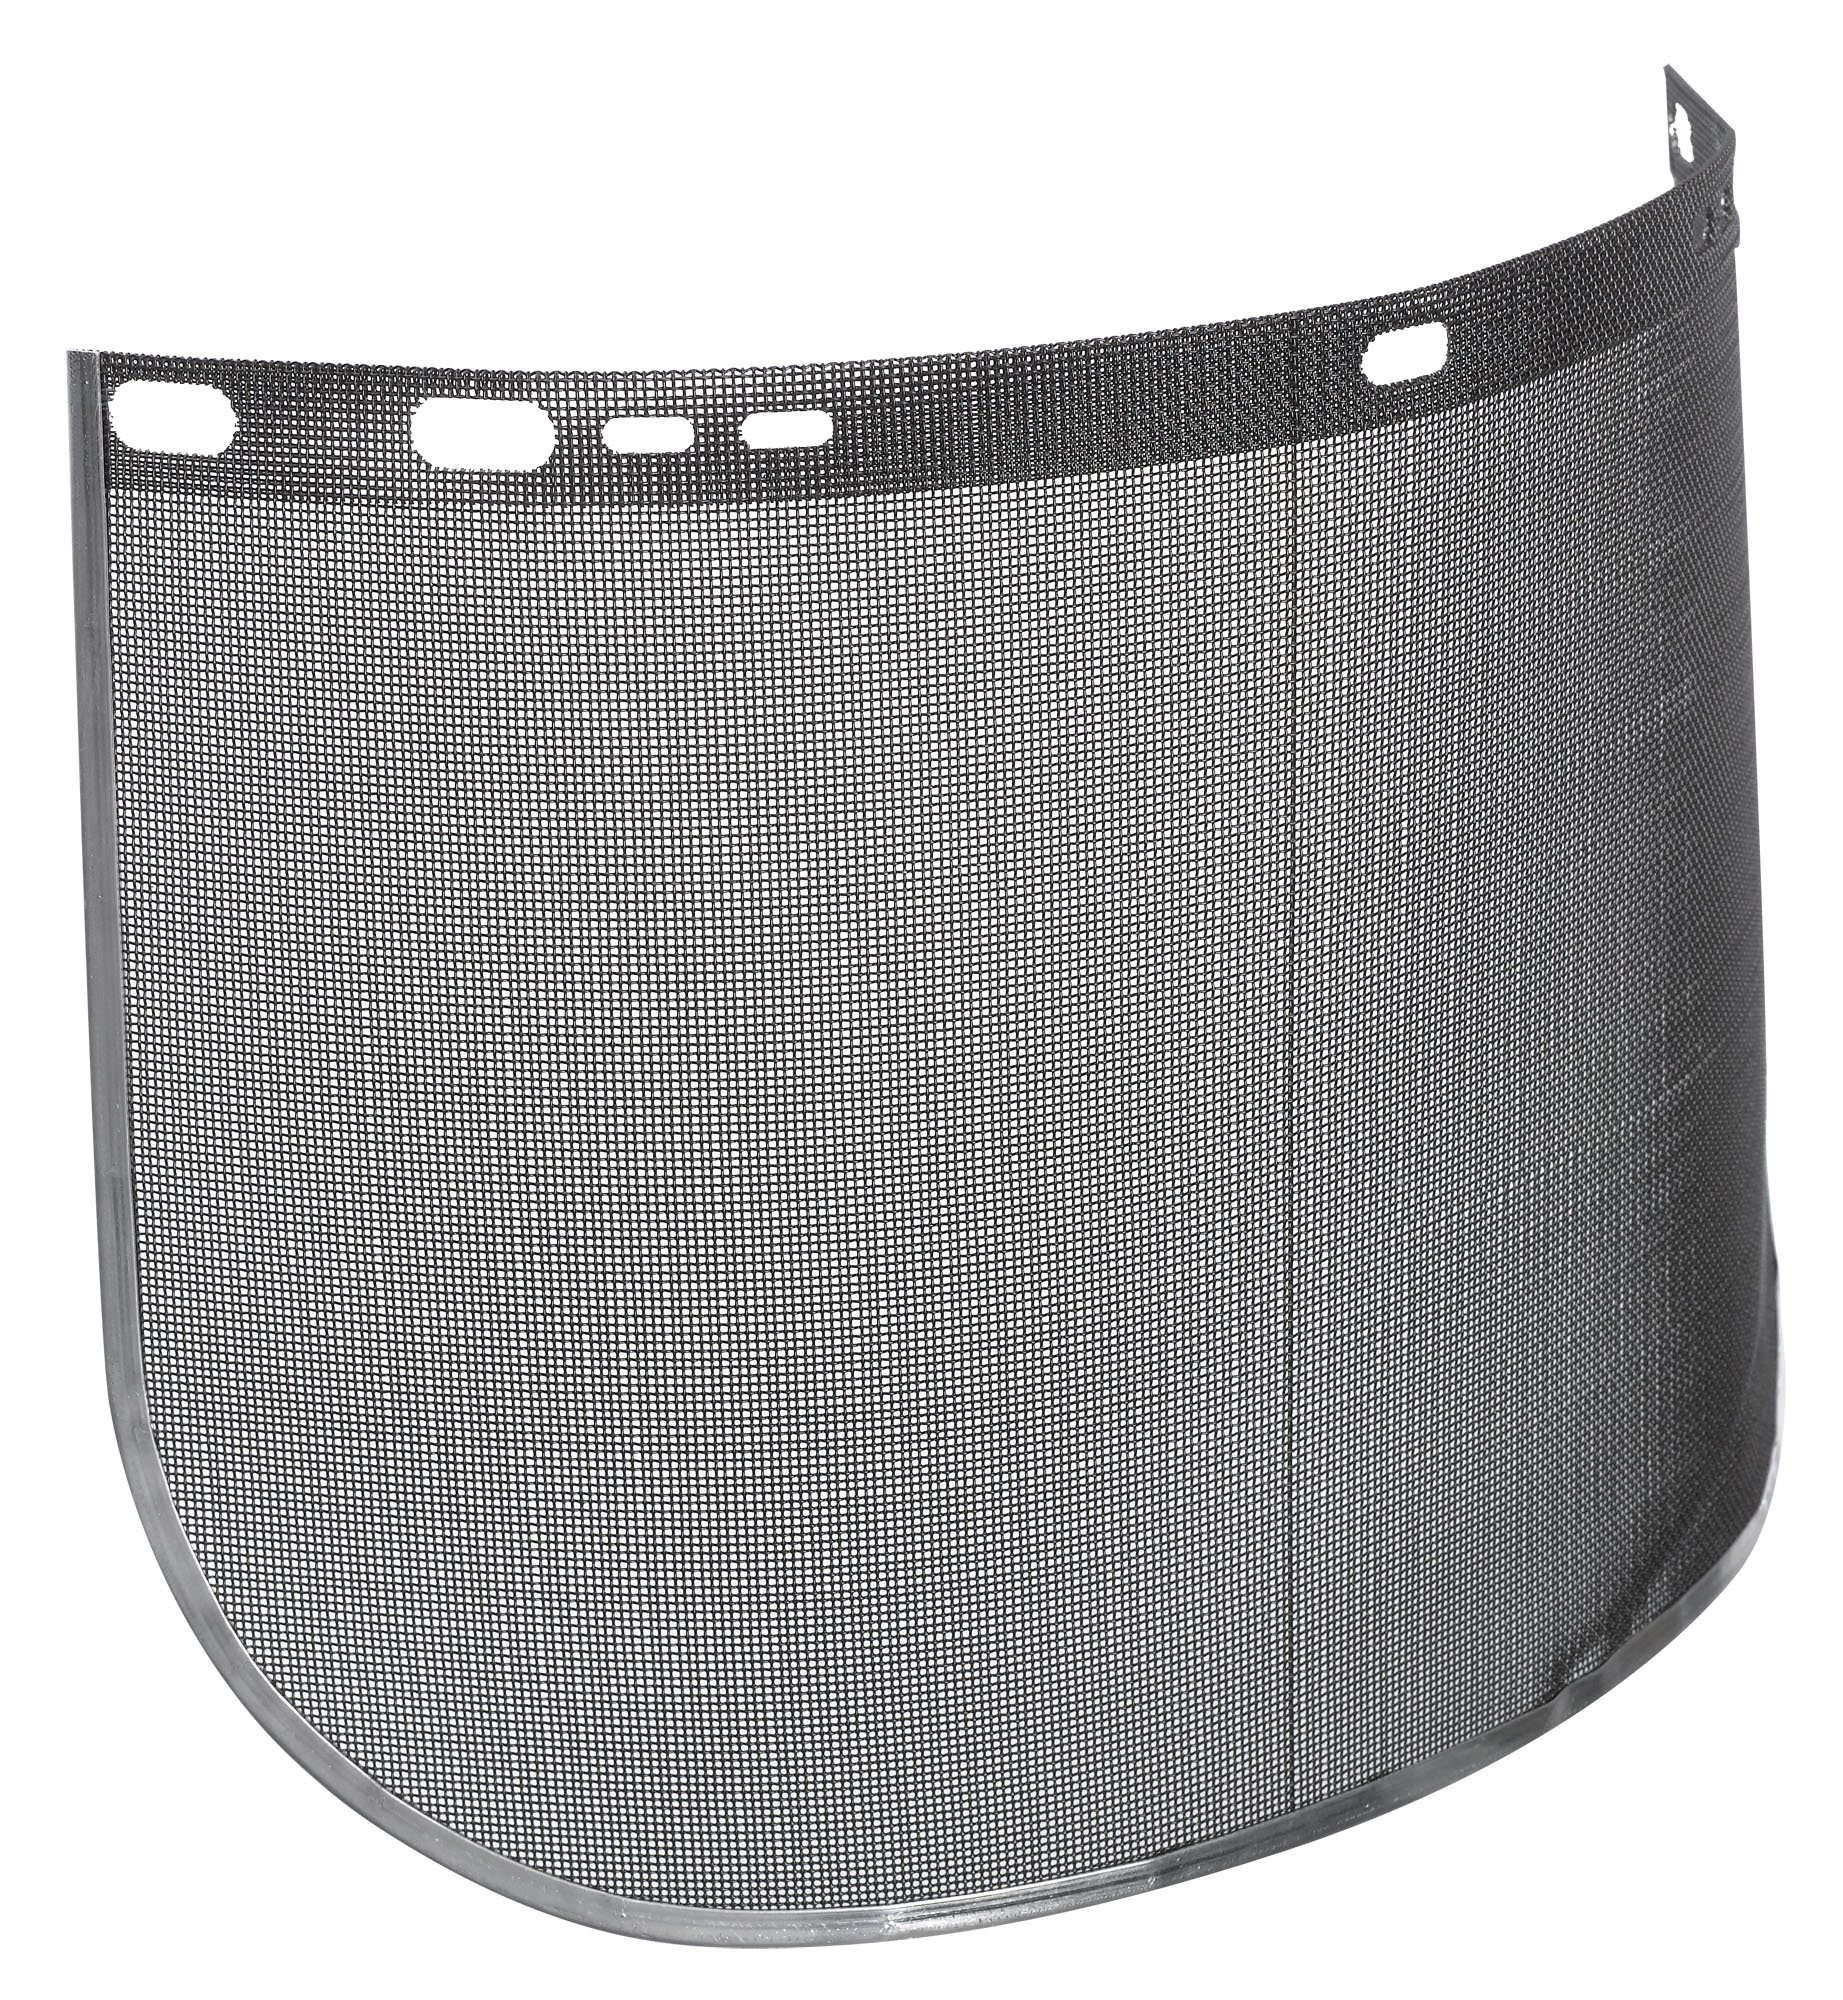 Jackson Safety F60 40 Mesh Steel Screen Aluminum Bound Wire Face Shield, 15-1/2'' Length x 9'' Width, Black (Case of 12)